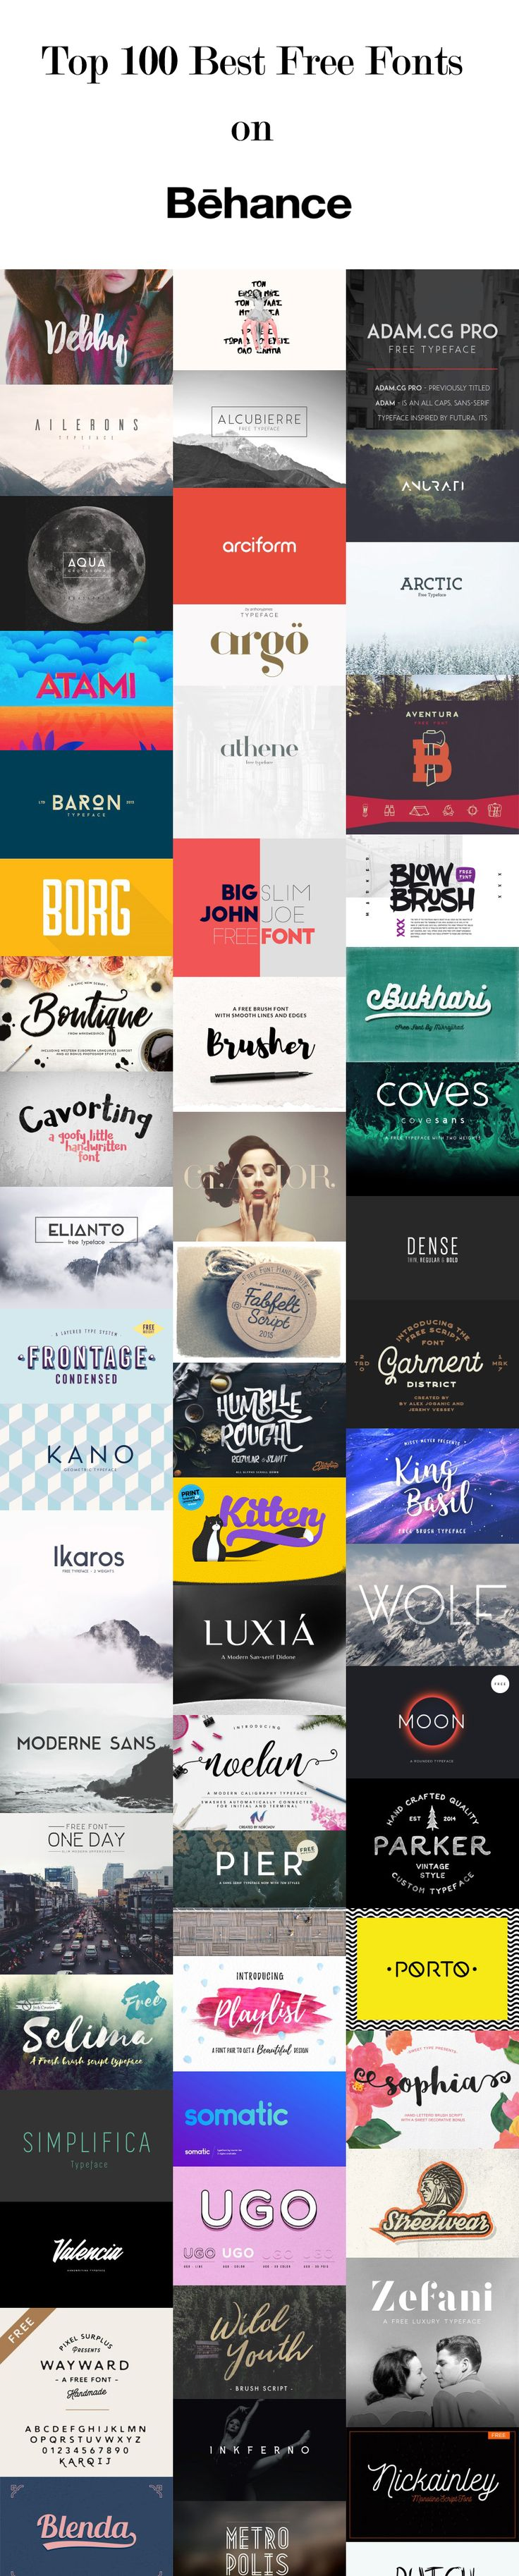 Top 100 Best #free  #fonts  on #behancewip  for #Designer  Everyone loves #freefonts , but finding high quality typefaces within the sea of amateur display fonts can be quite a challenge.